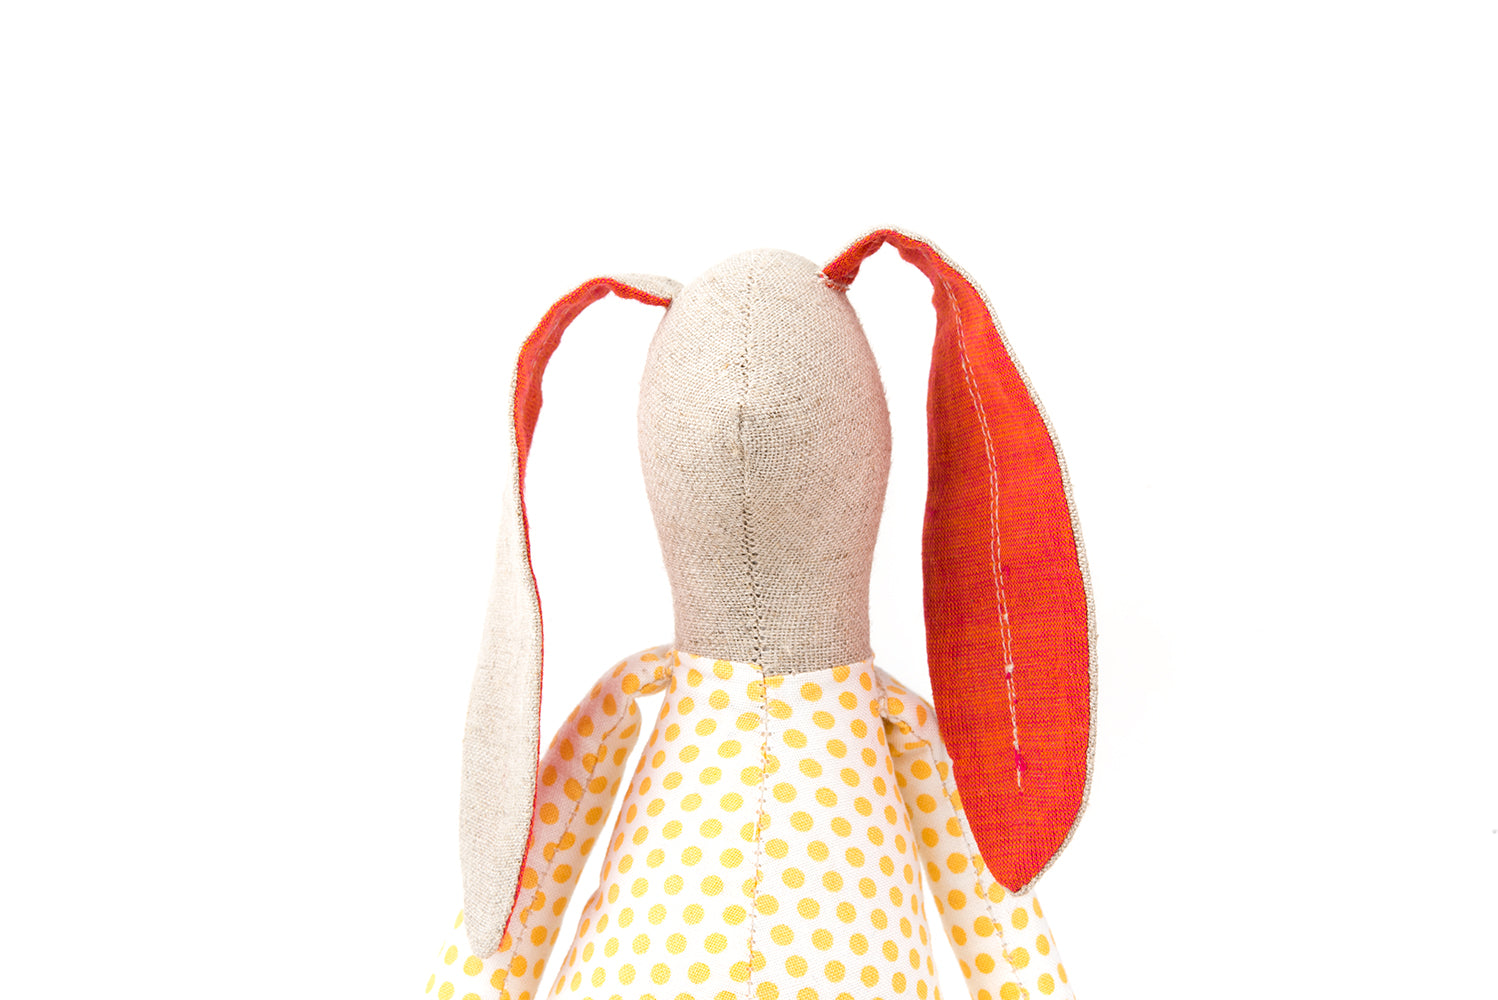 Decorative doll, Rabbit doll, Handmade bunny, Dolls set for kids, Set of 2 dolls, Baby shower gift, Stuffed animal, Twins gift, Small doll